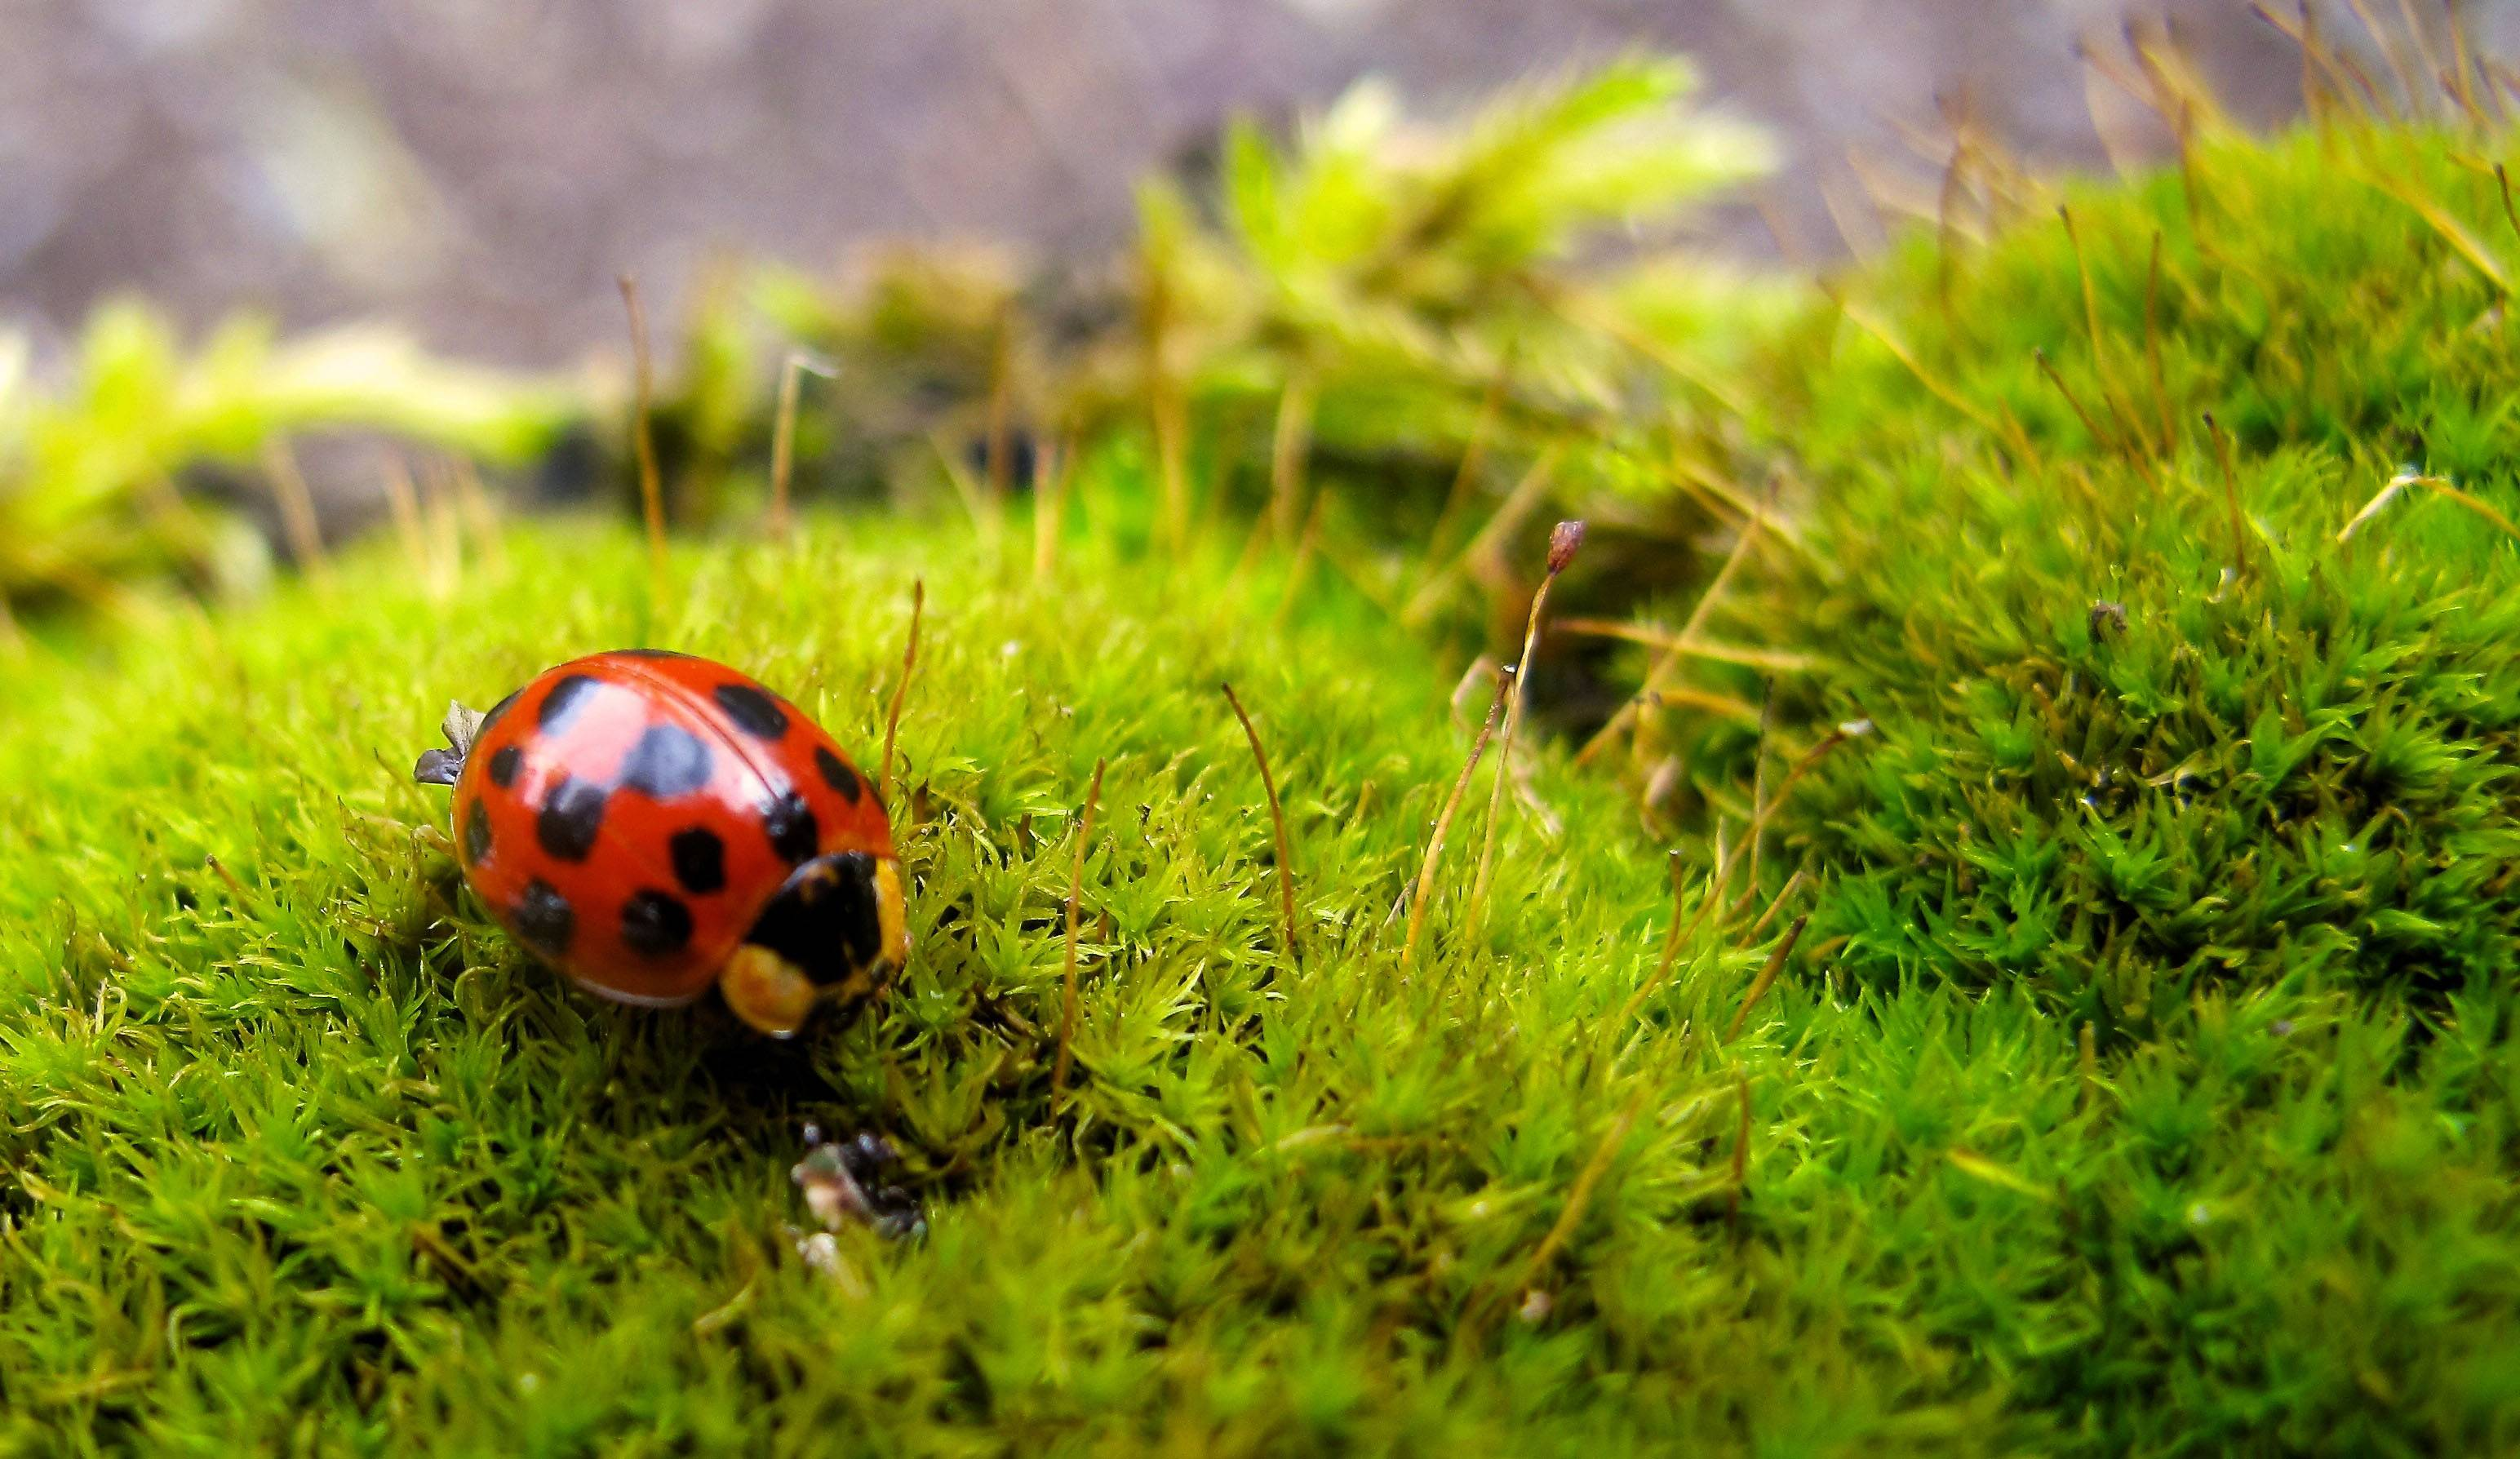 Many gardeners use pesticides -- organic or otherwise -- only as a last resort. They opt instead for such predatory insects as ladybugs, which individually can consume up to 5,000 aphids during their lifetime, and can be bought commercially and released from containers into the garden.